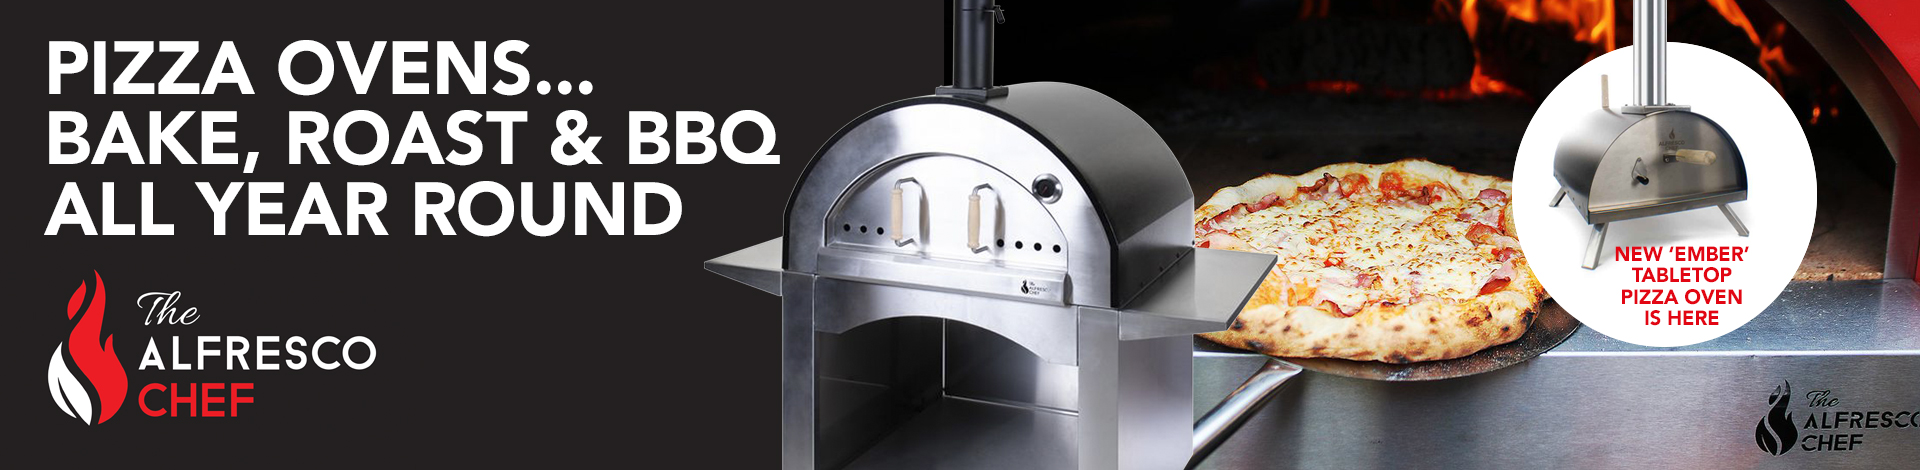 Alfresco Chef pizza ovens all year round